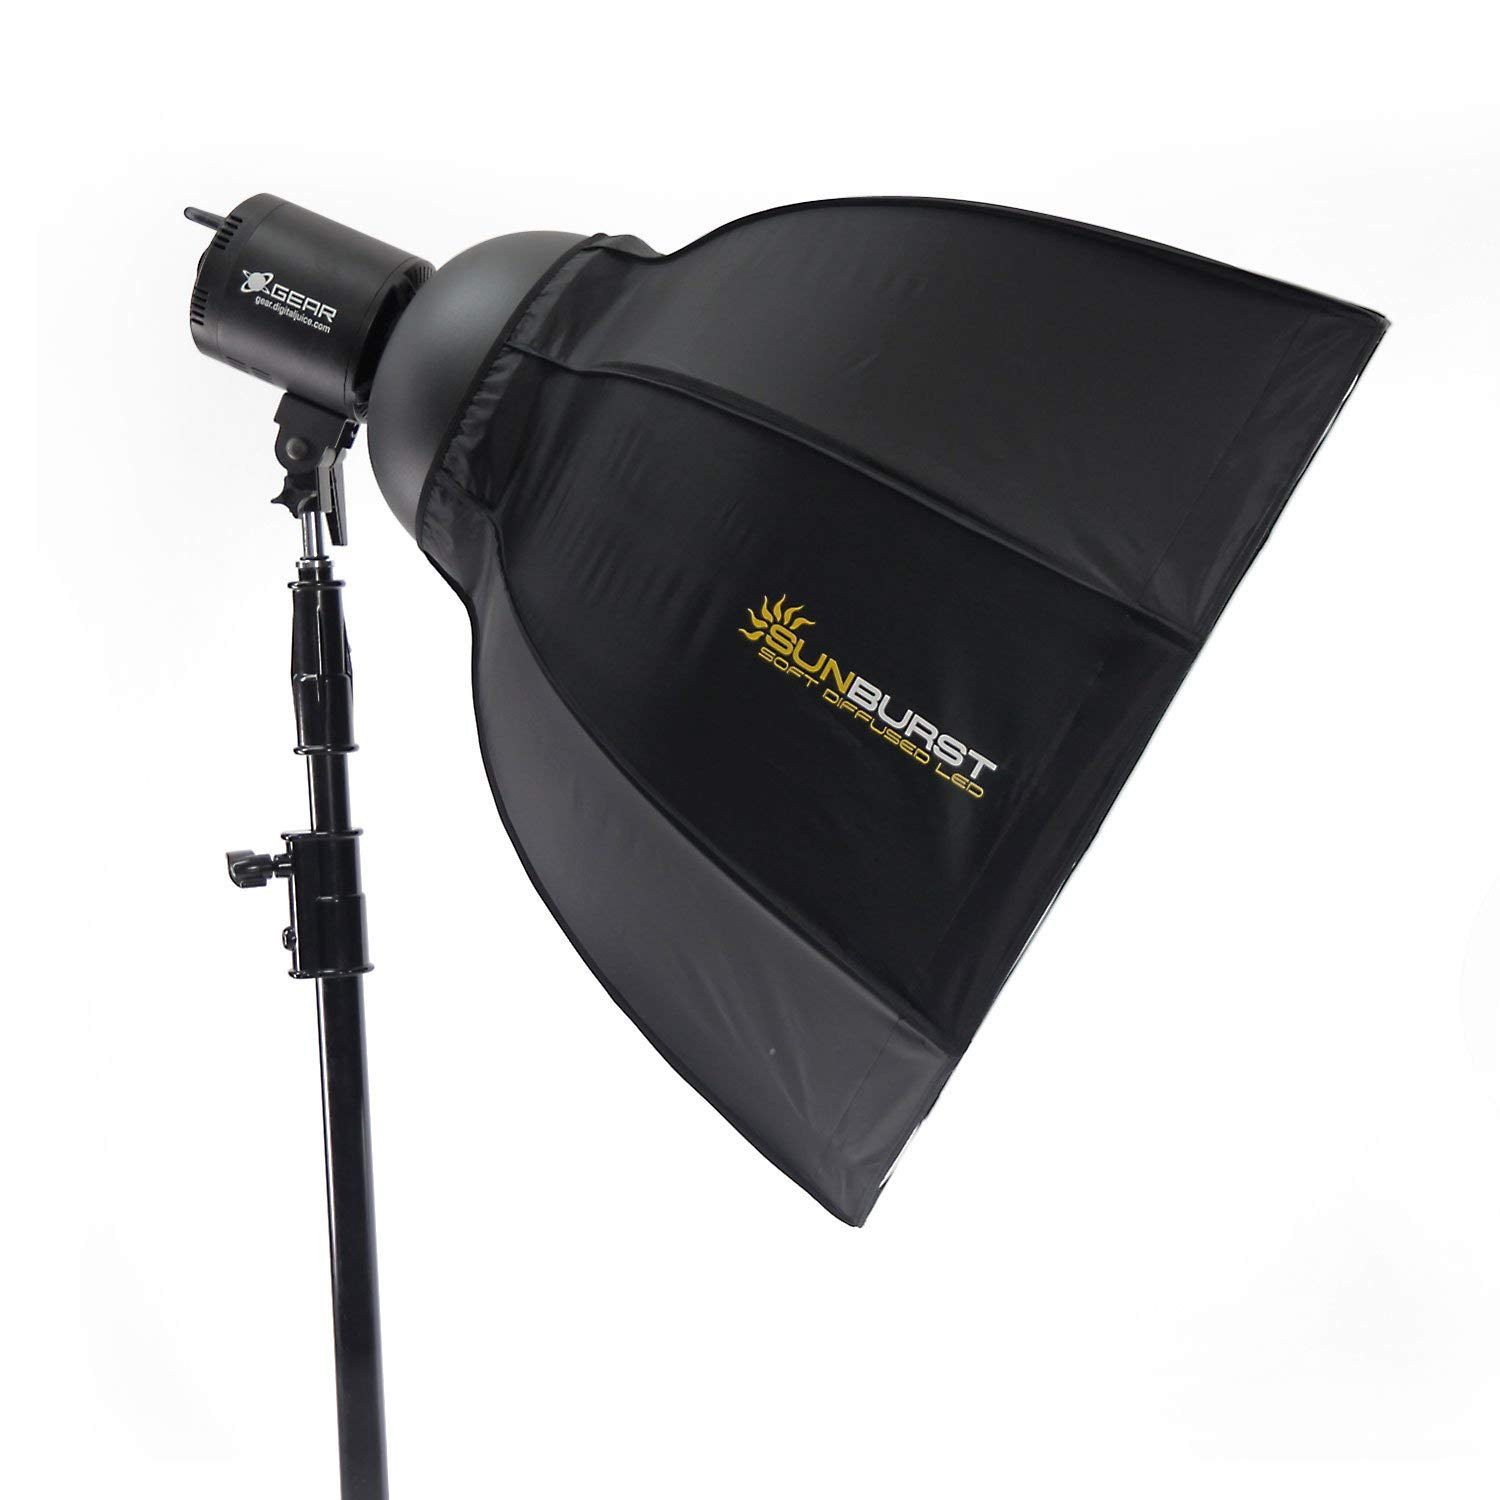 Digital Juice Sunburst Photography Softbox Lighting Kit w/ 288 LED Lighting, Softbox Light Diffuser w/Umbrella Reflector & Portable, Deluxe Carry Case for Photography & Videography